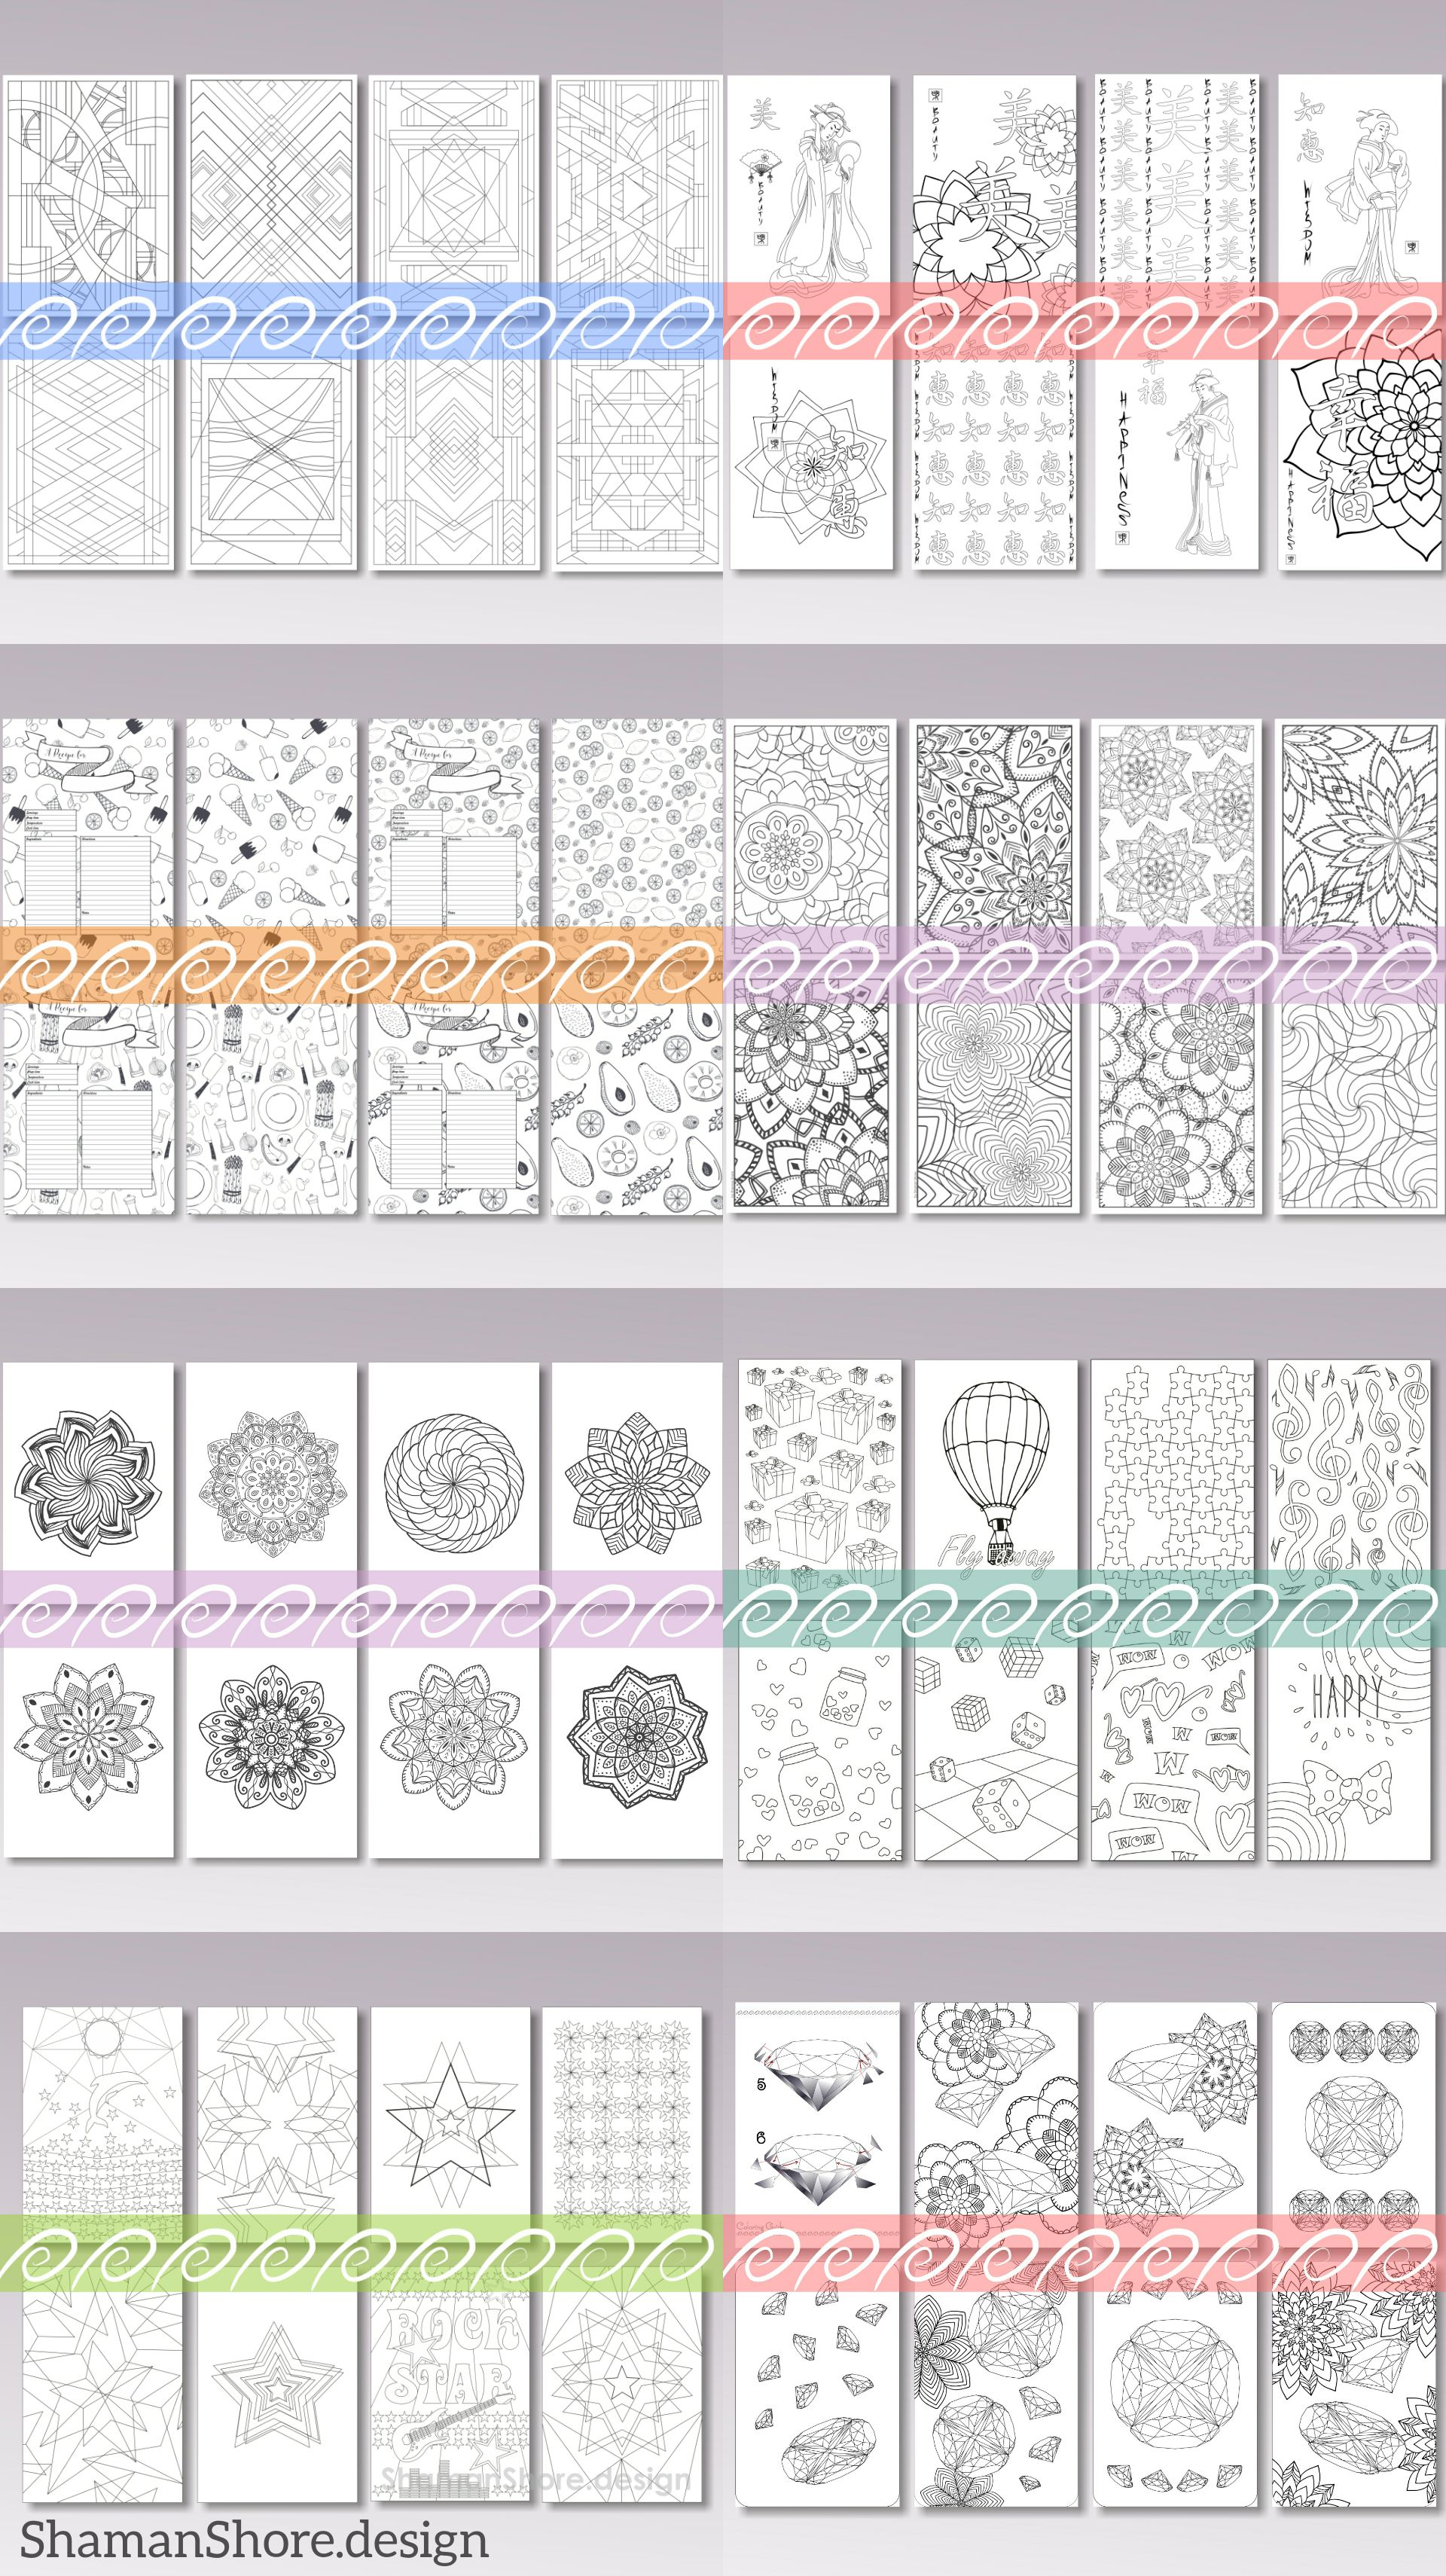 #ShShPrintables A bundle of 7 adult coloring books | Coloring pages for grown ups on Etsy | Printable coloring pages for adults, digital download Pdf